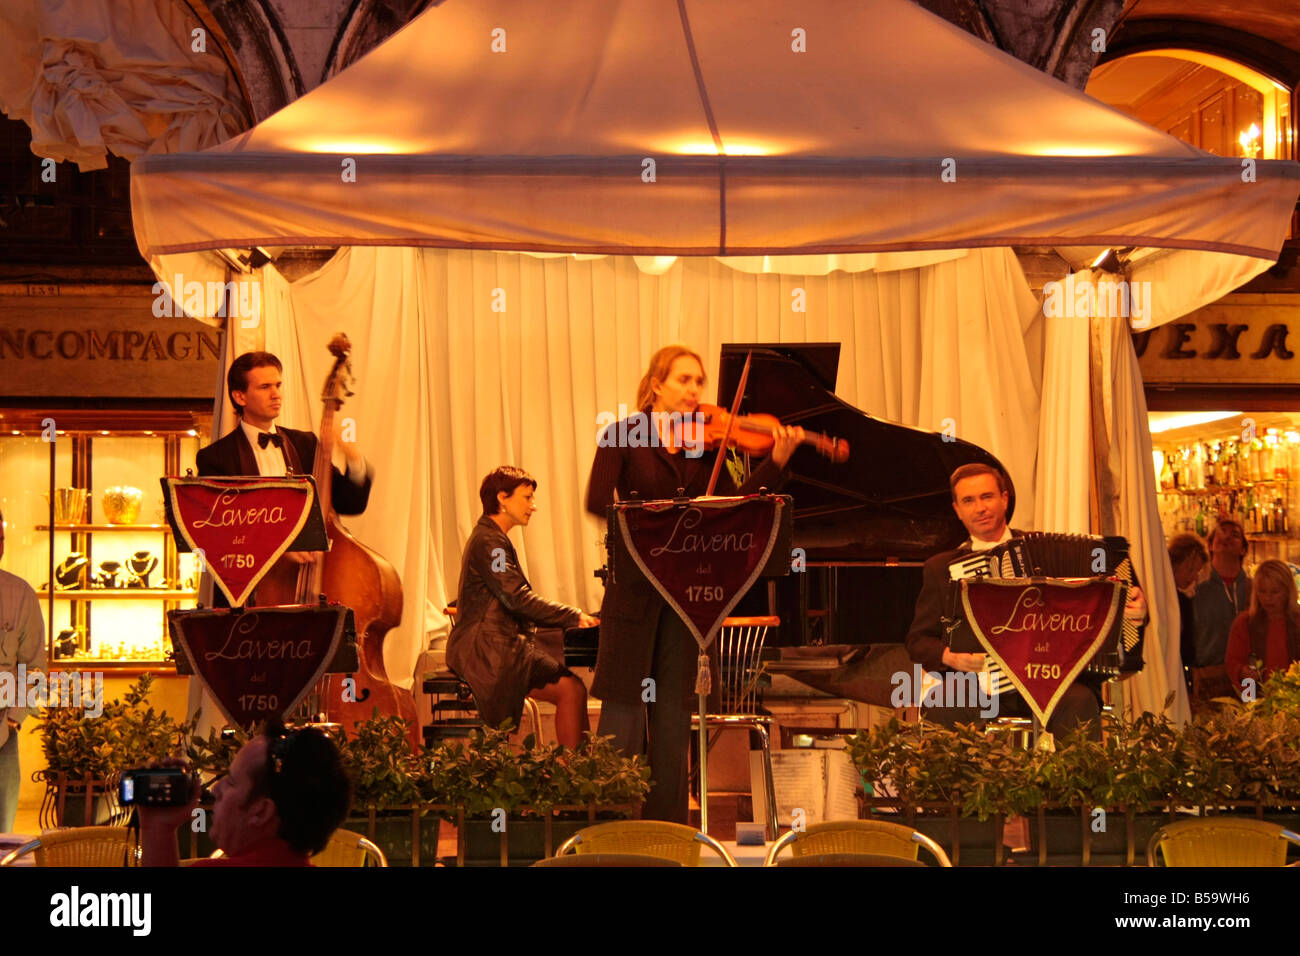 live band at the historic Caff Lavena on St Marks square in Venice Italy - Stock Image